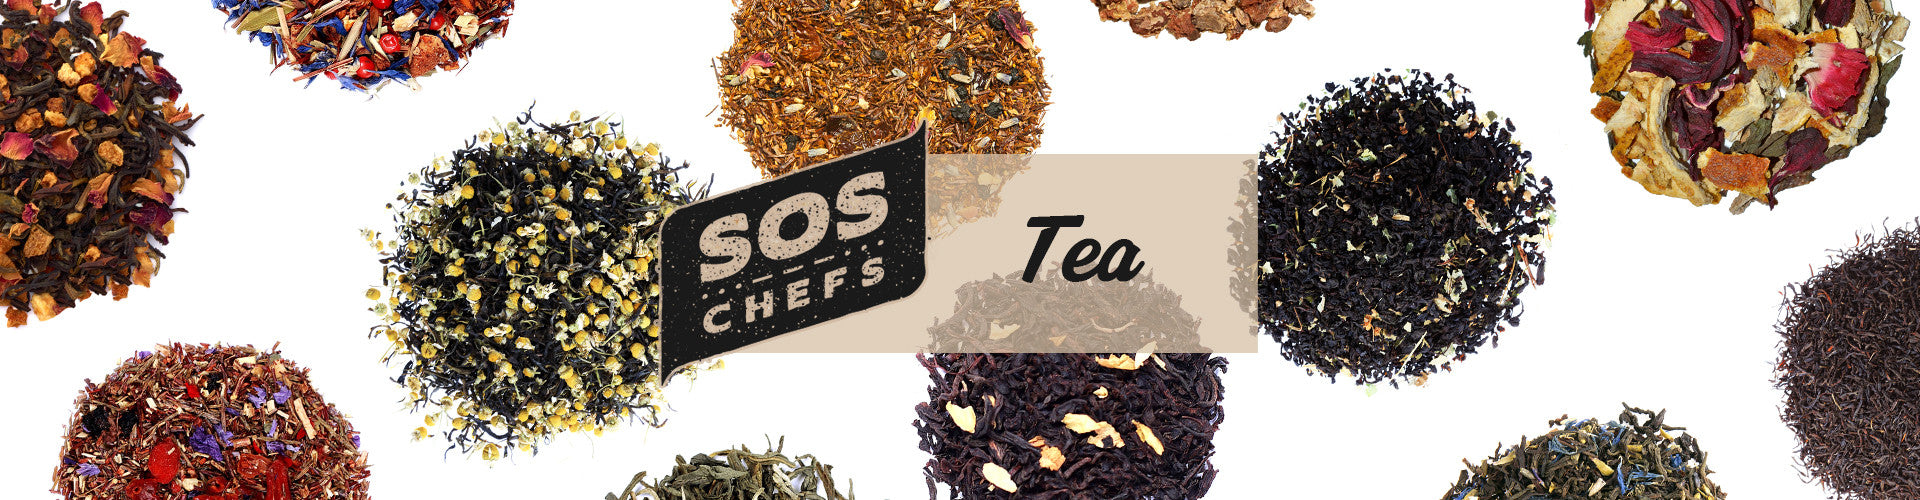 Tea and Dried Flowers – SOS Chefs